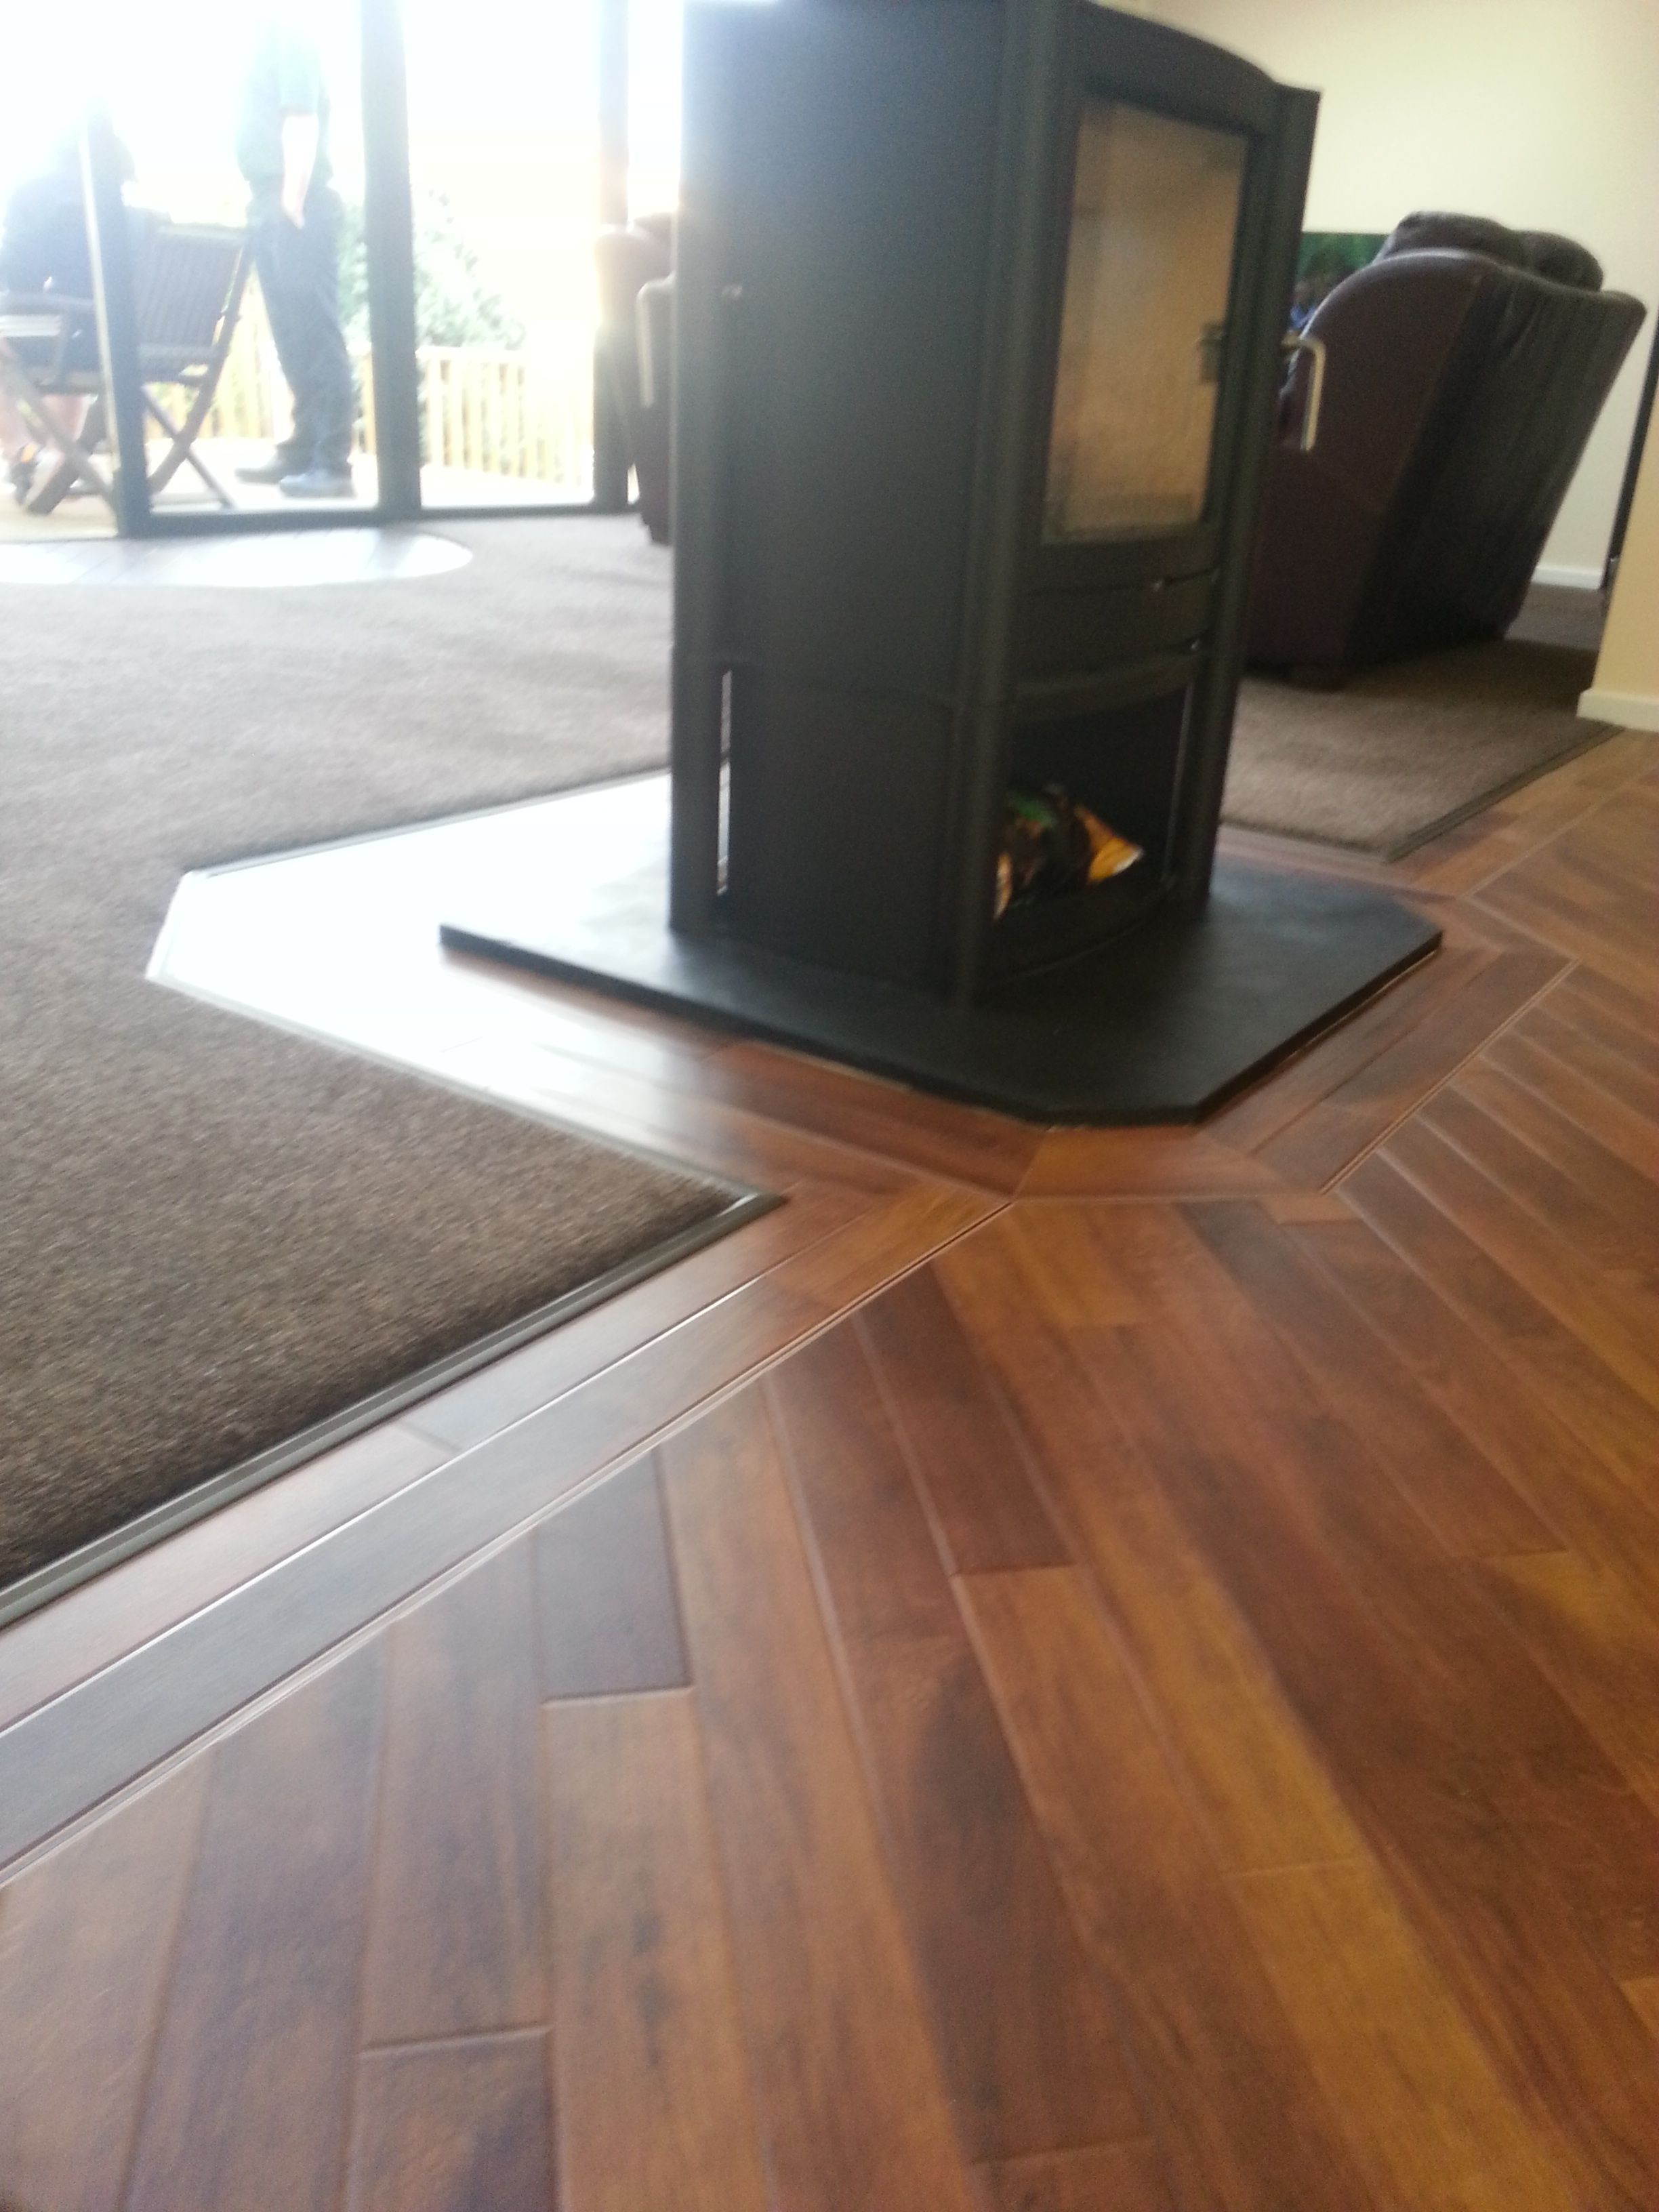 and cleaned finish with care once protects sealant flooring then surface amtico matt also floor karndean has colour which a work of been deep the adds img depth prosteamuk use we to